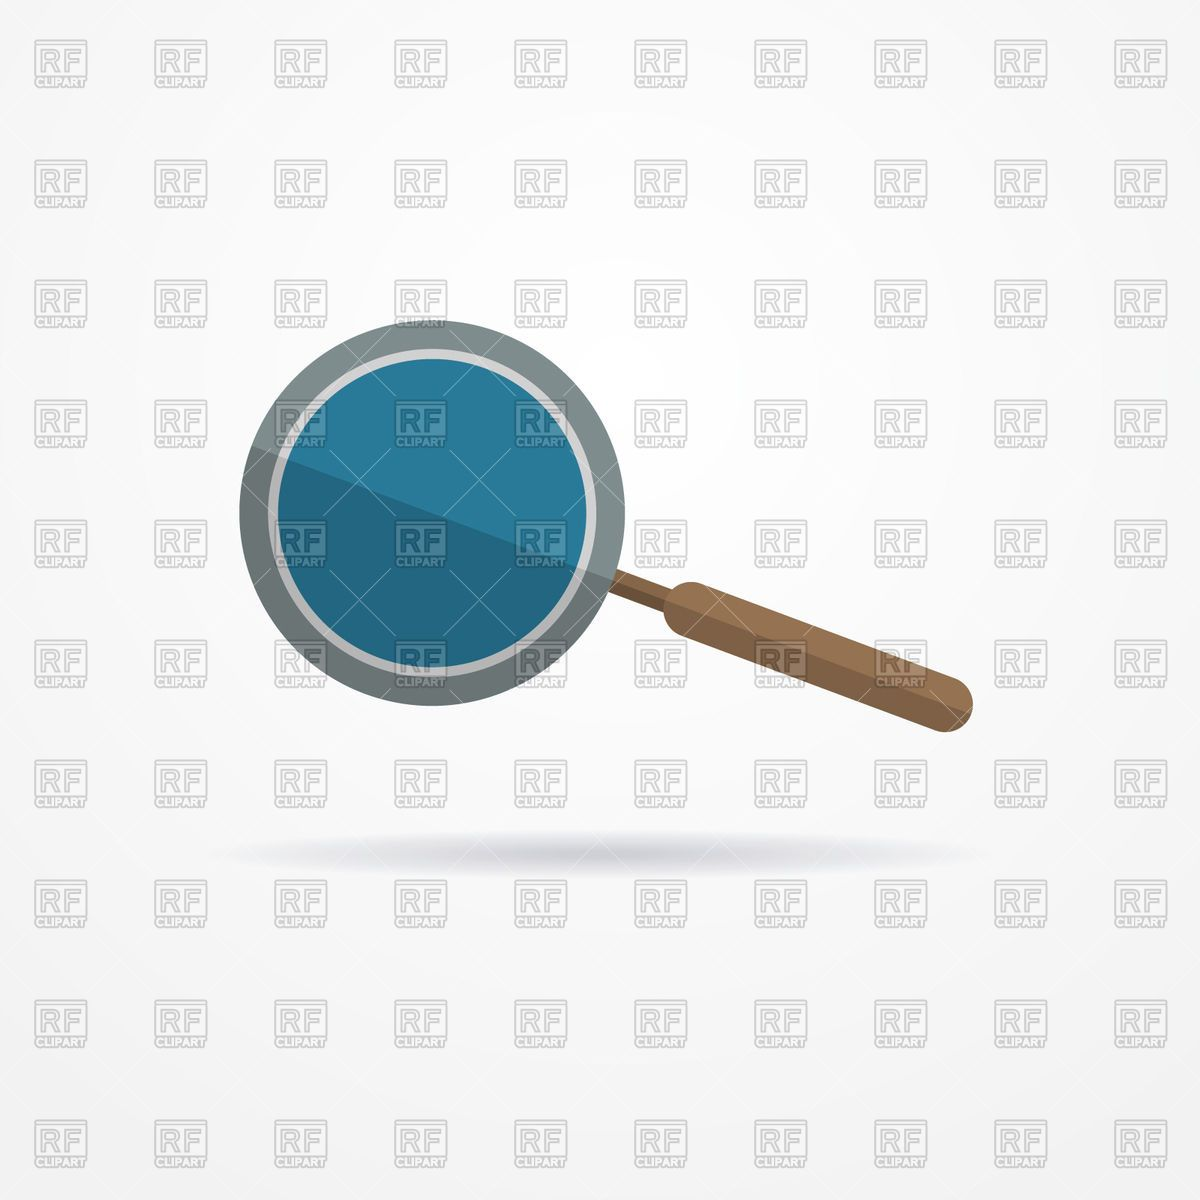 hight resolution of download free image magnifying glass flat 77665 download free vector clipart eps